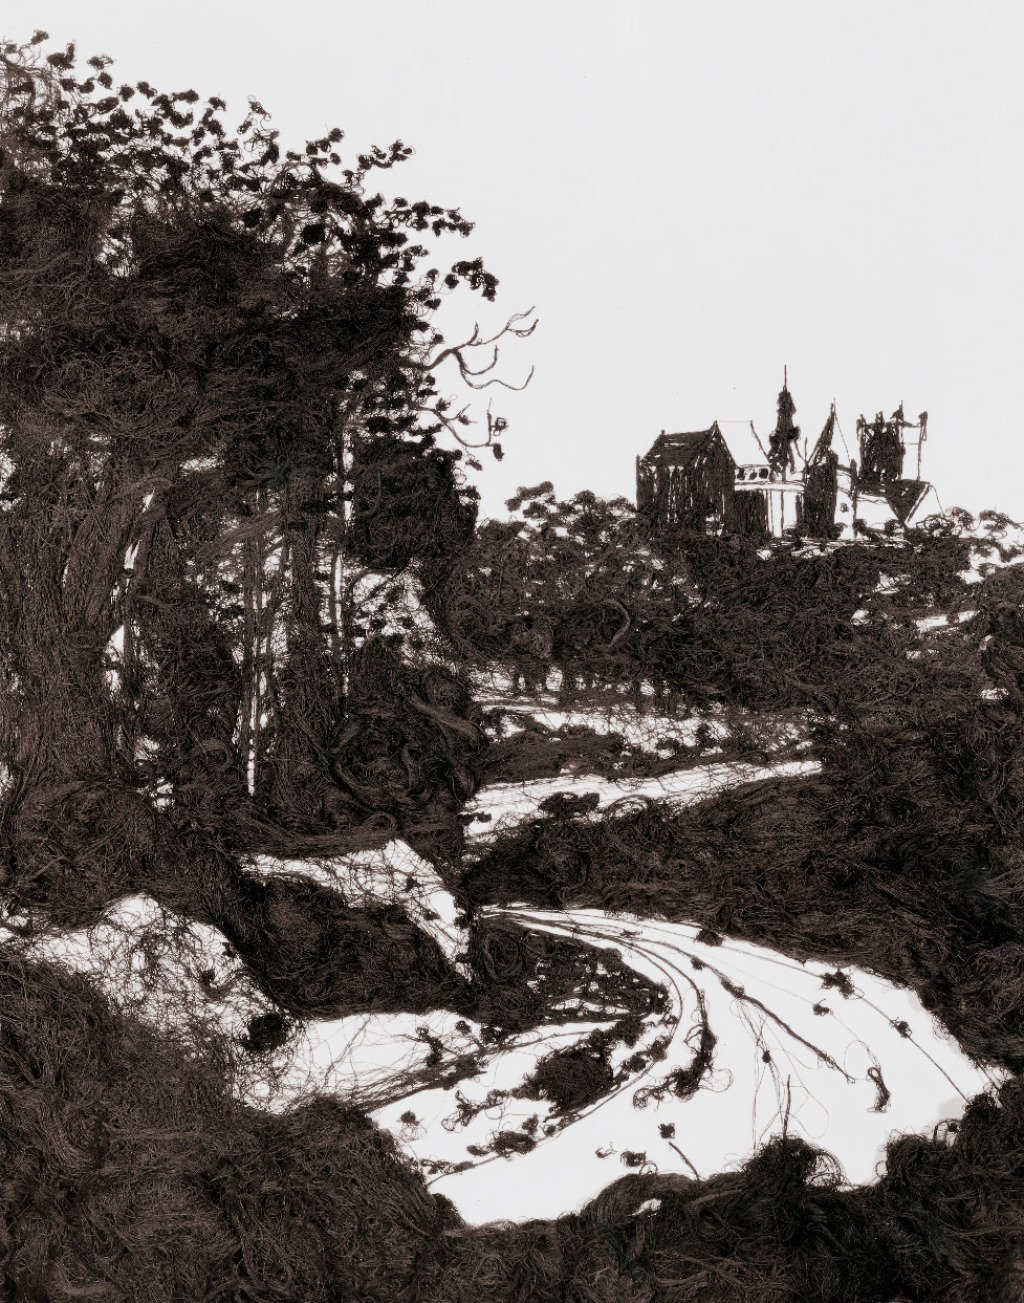 Vik Muniz, 20,000 Yards, The Castle at Bentheim, After Jacob Ruisdael